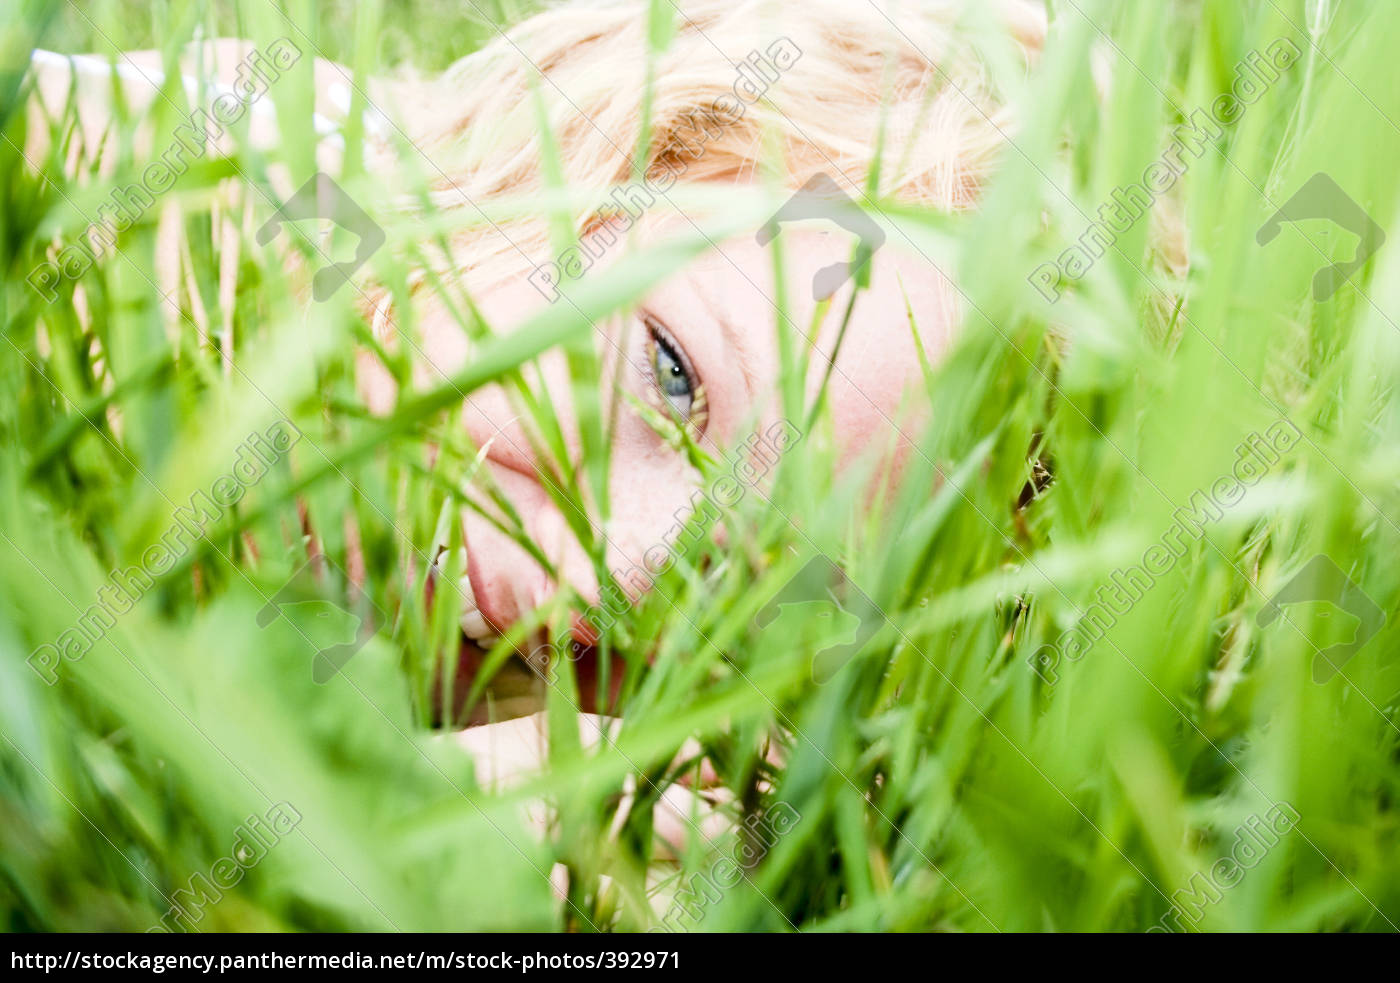 looking, through, the, grass - 392971